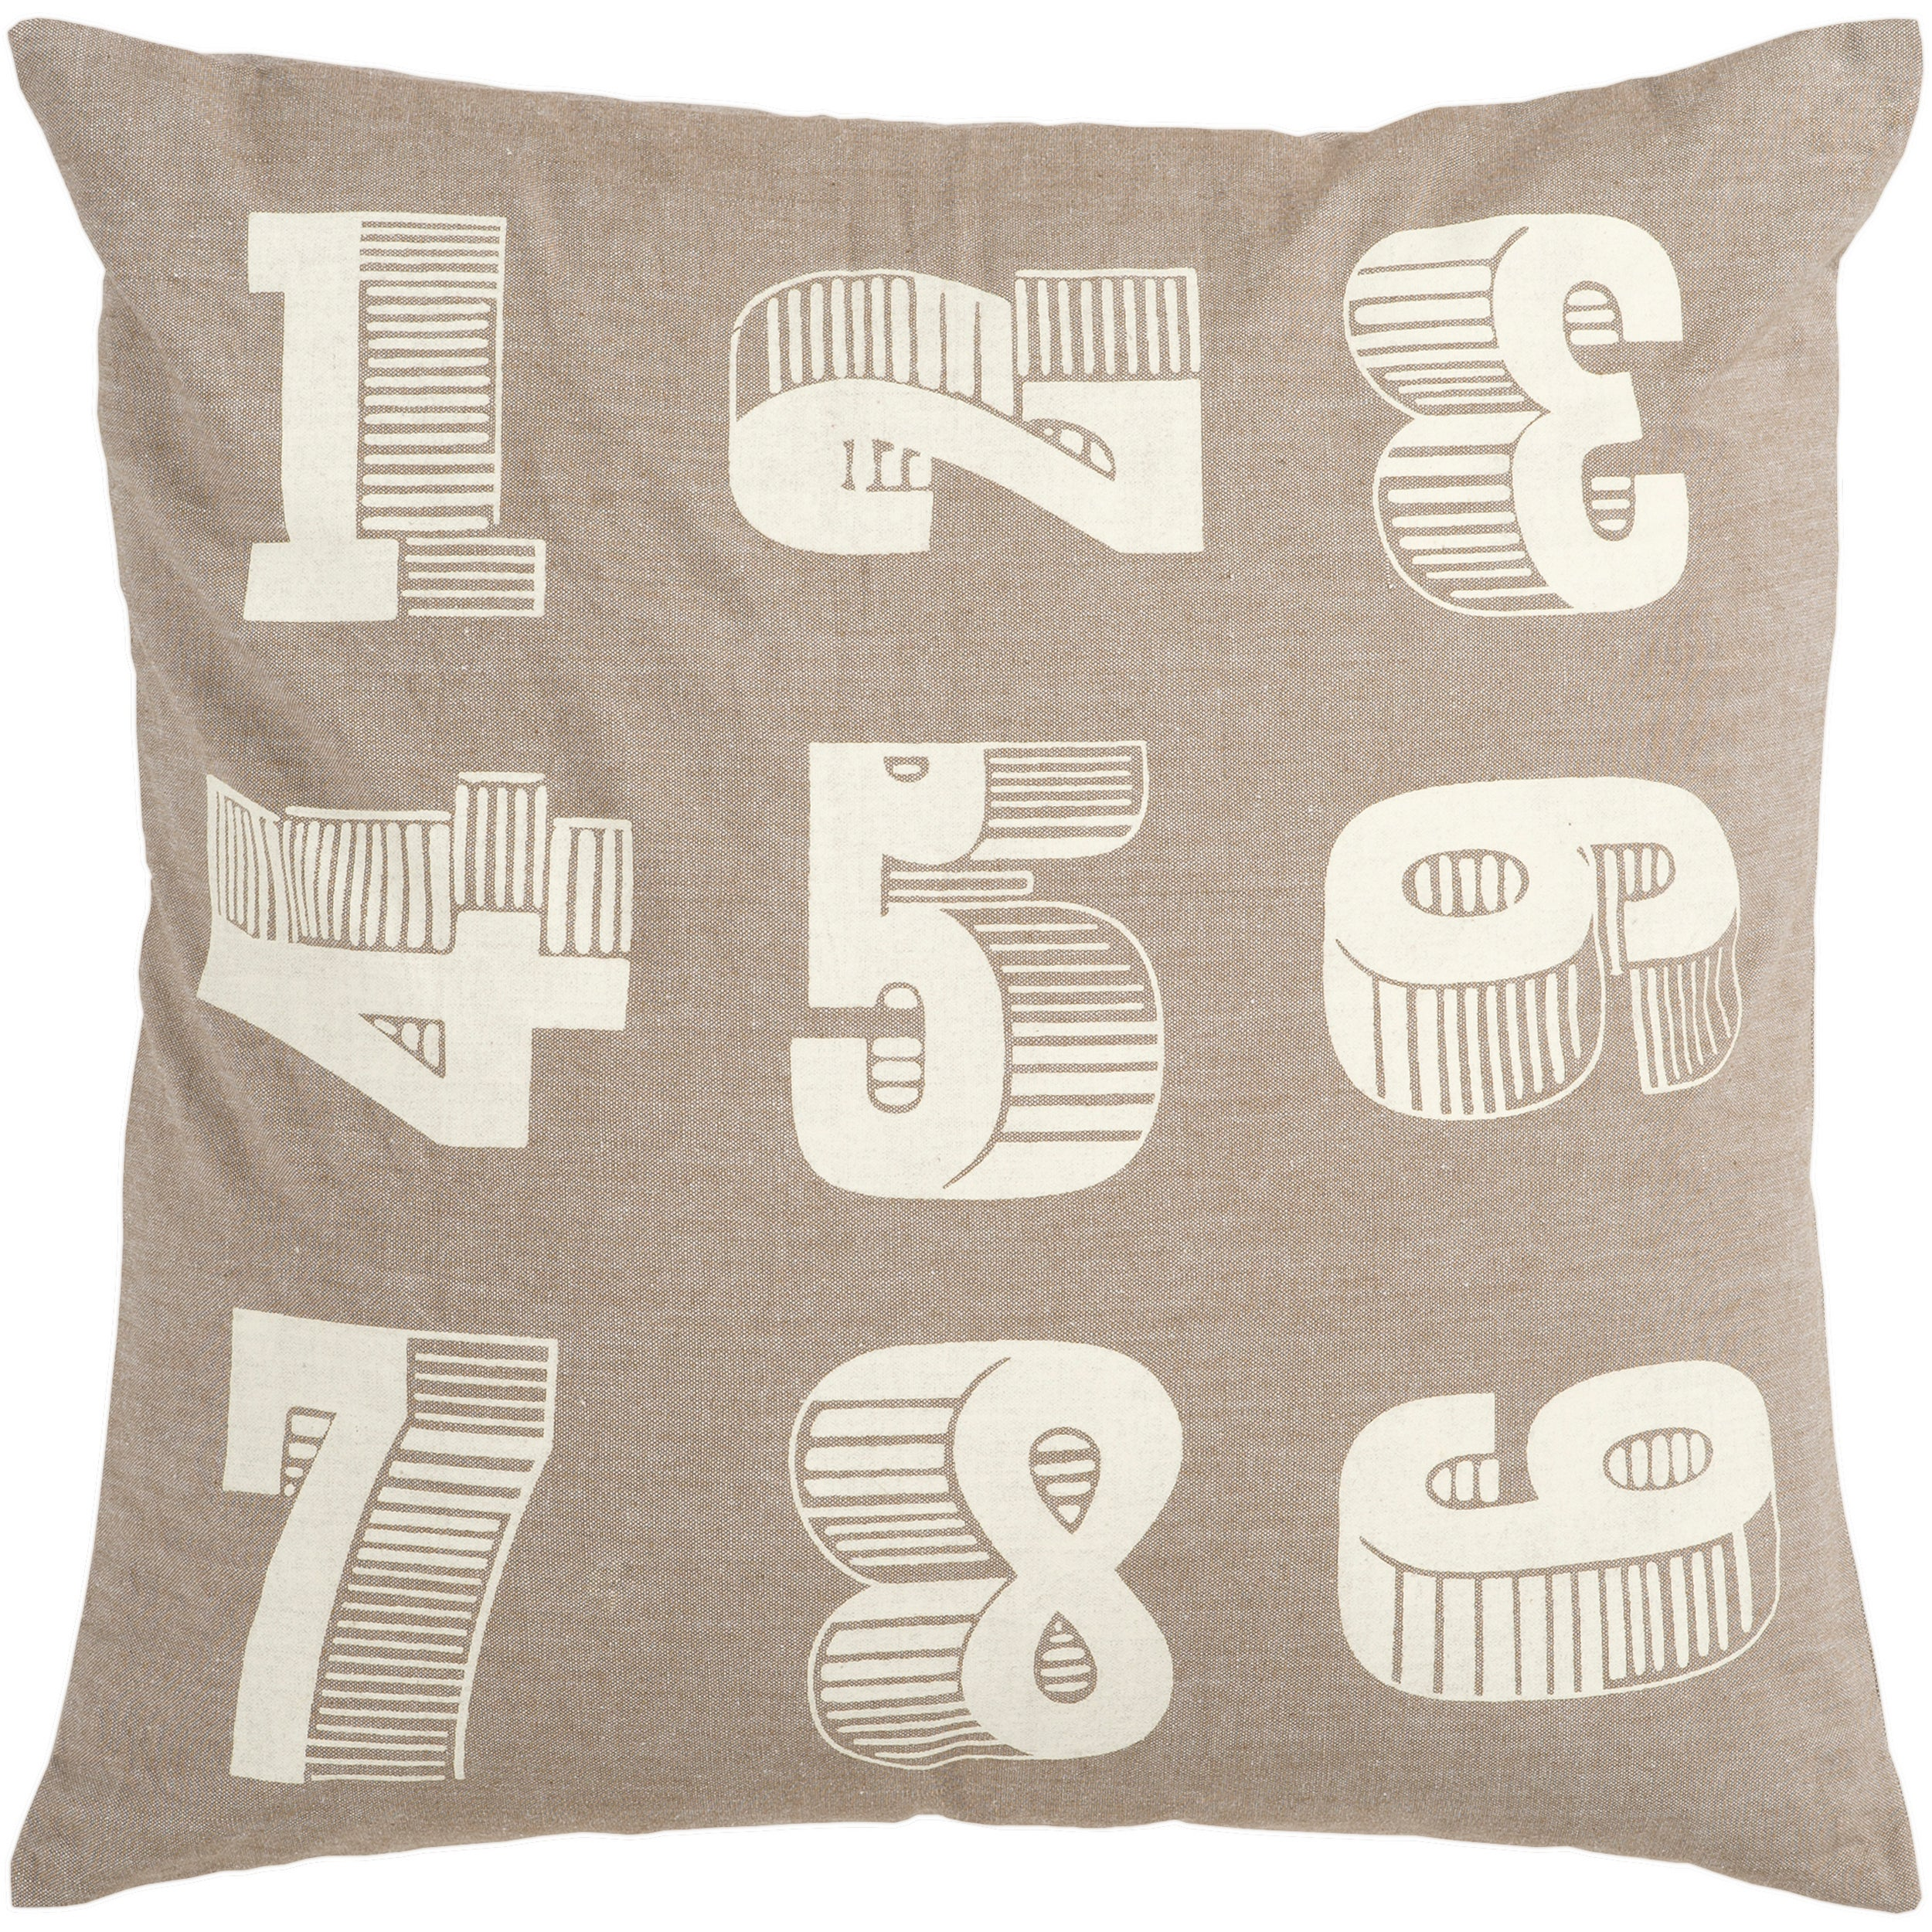 Crass 18-inch Poly Decorative Pillow